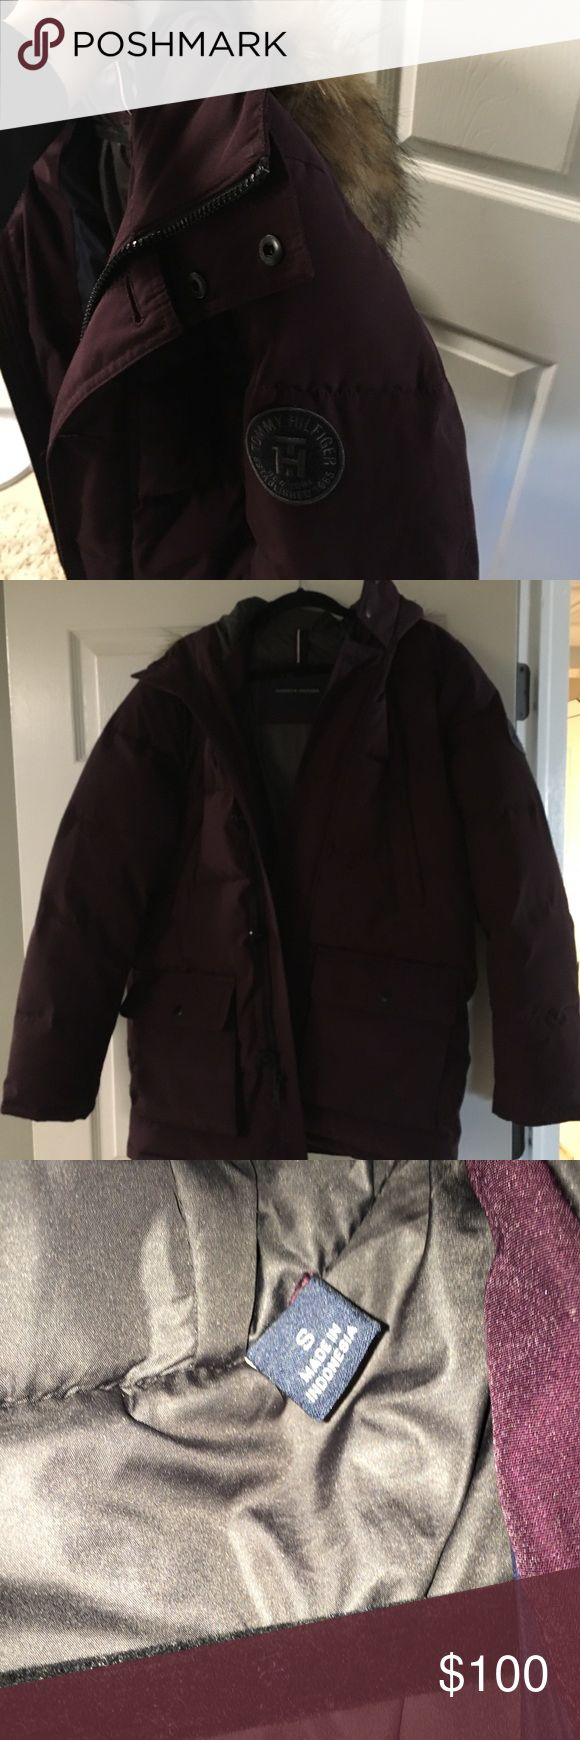 Tommy Hilfiger Down Jacket/ Parka Tommy Hilfiger Purple/ Deep Plum Down Parka  Men's size small  Smoke free home  Worn a handful of time - in great condition Tommy Hilfiger Jackets & Coats Puffers